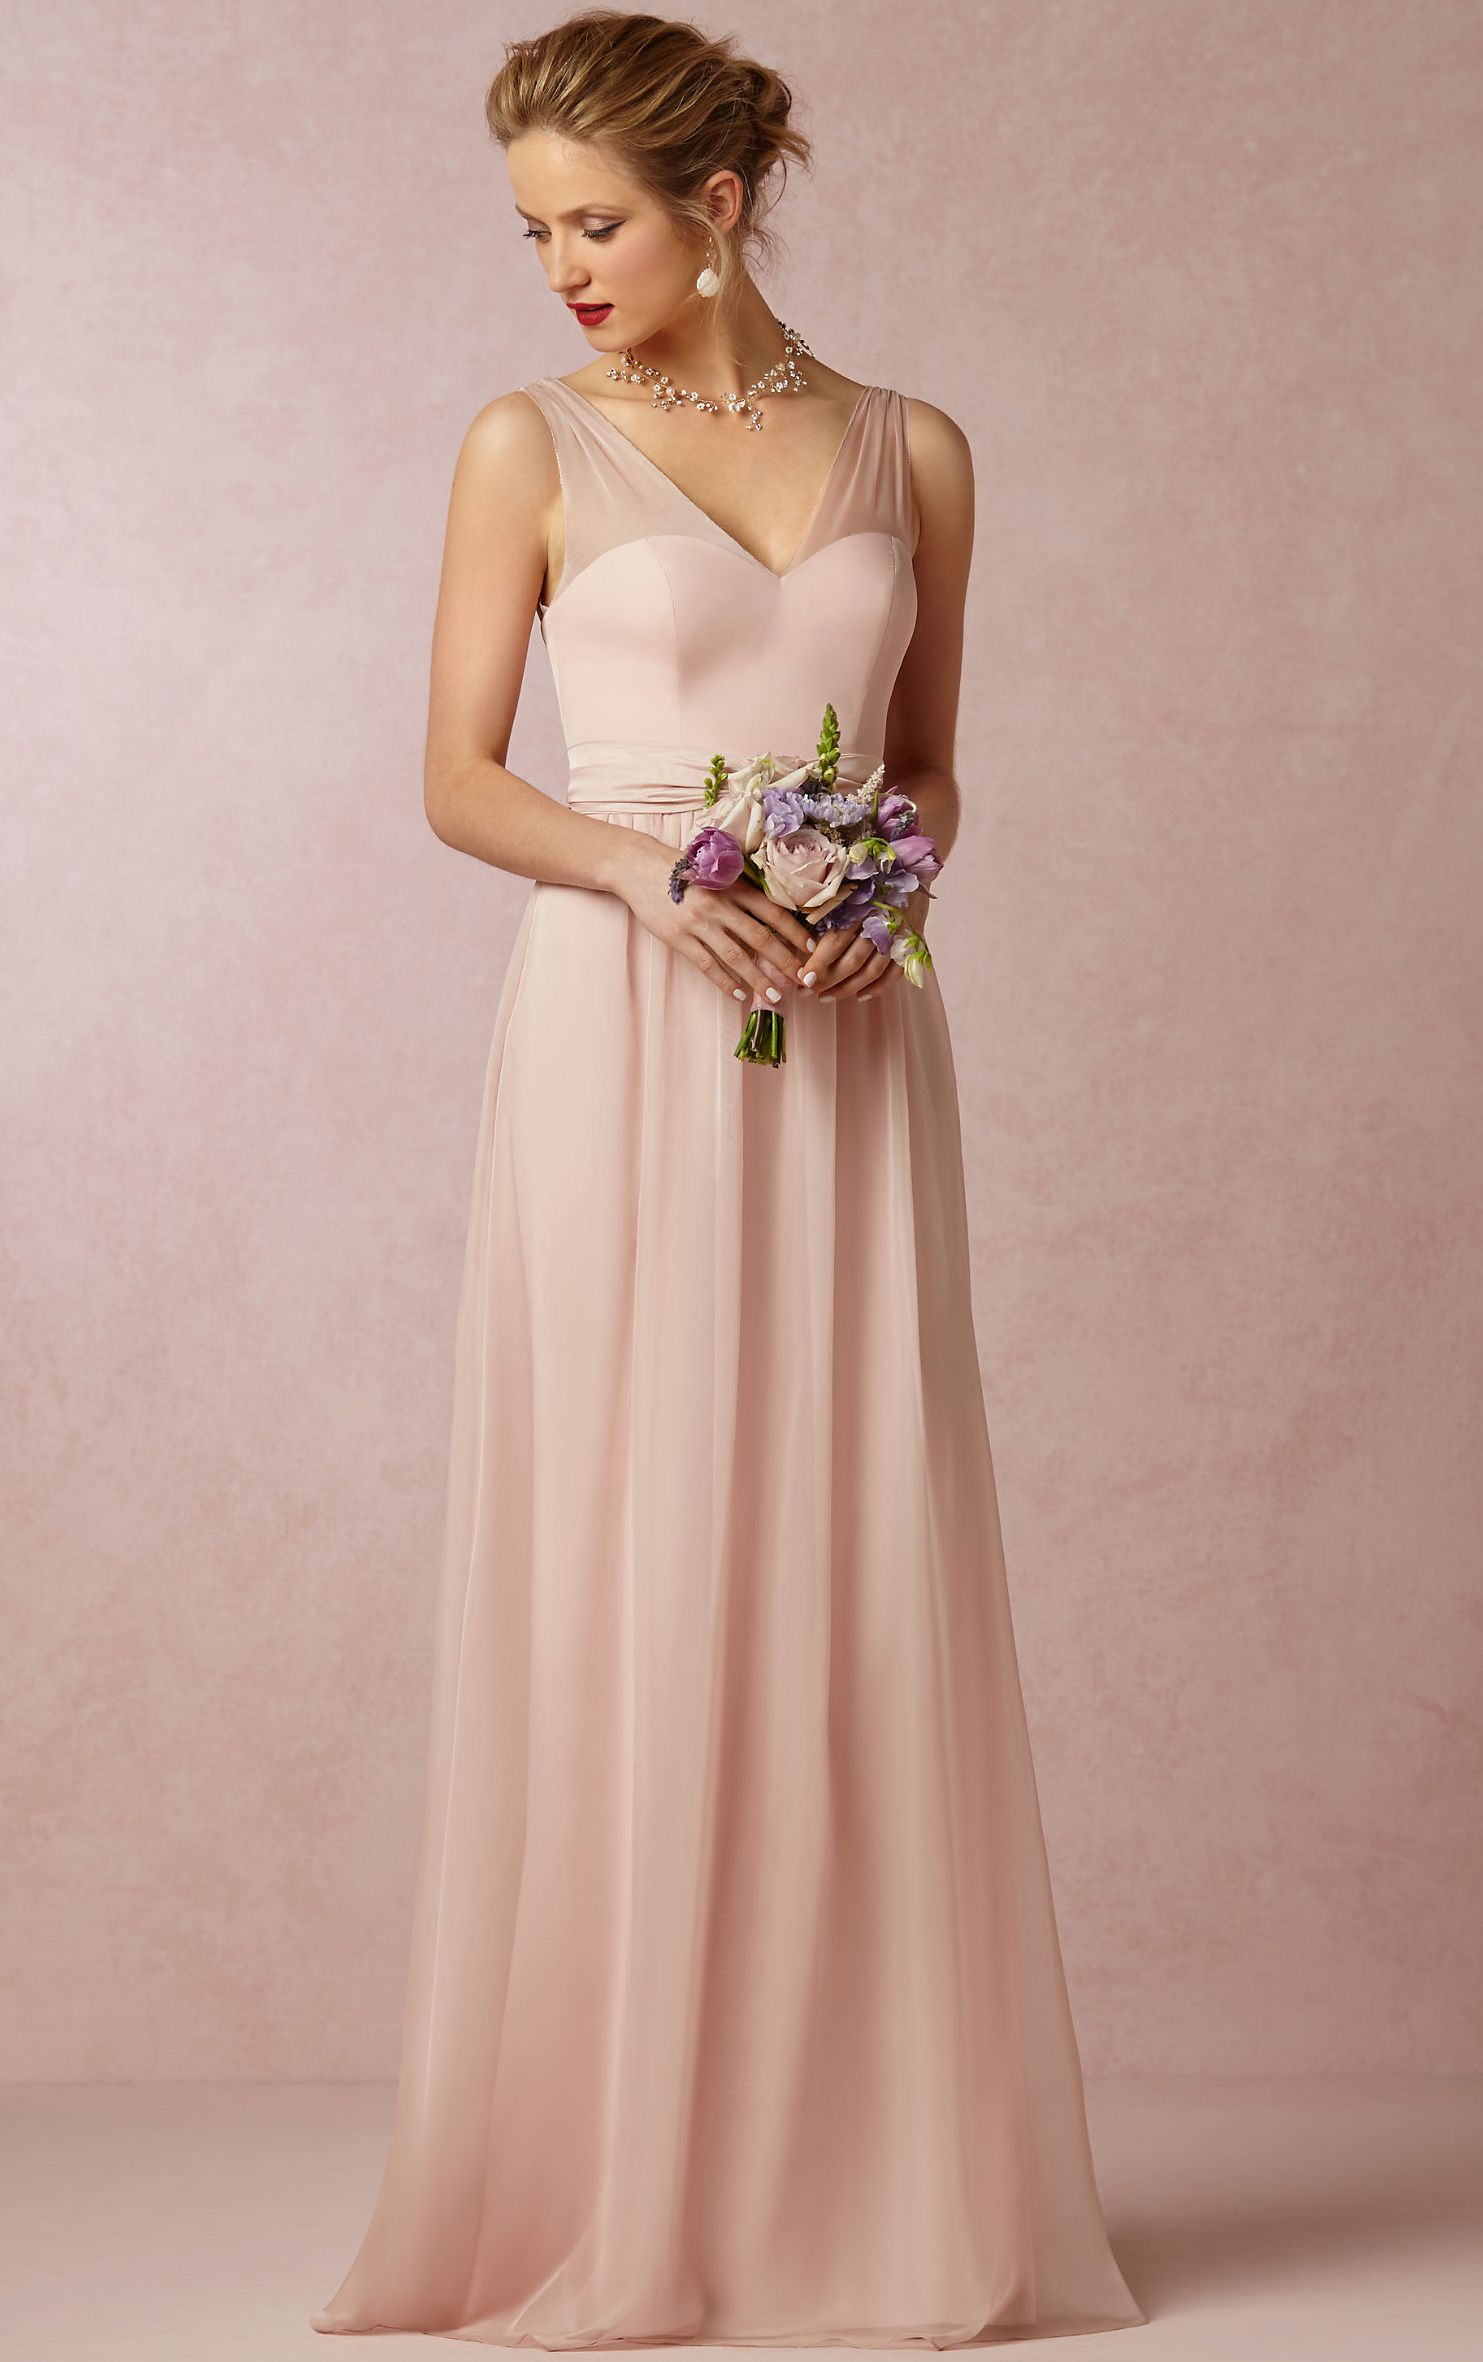 Pink Tea Length Bridesmaid Dresses | Top 100 Pink bridesmaid dresses ...